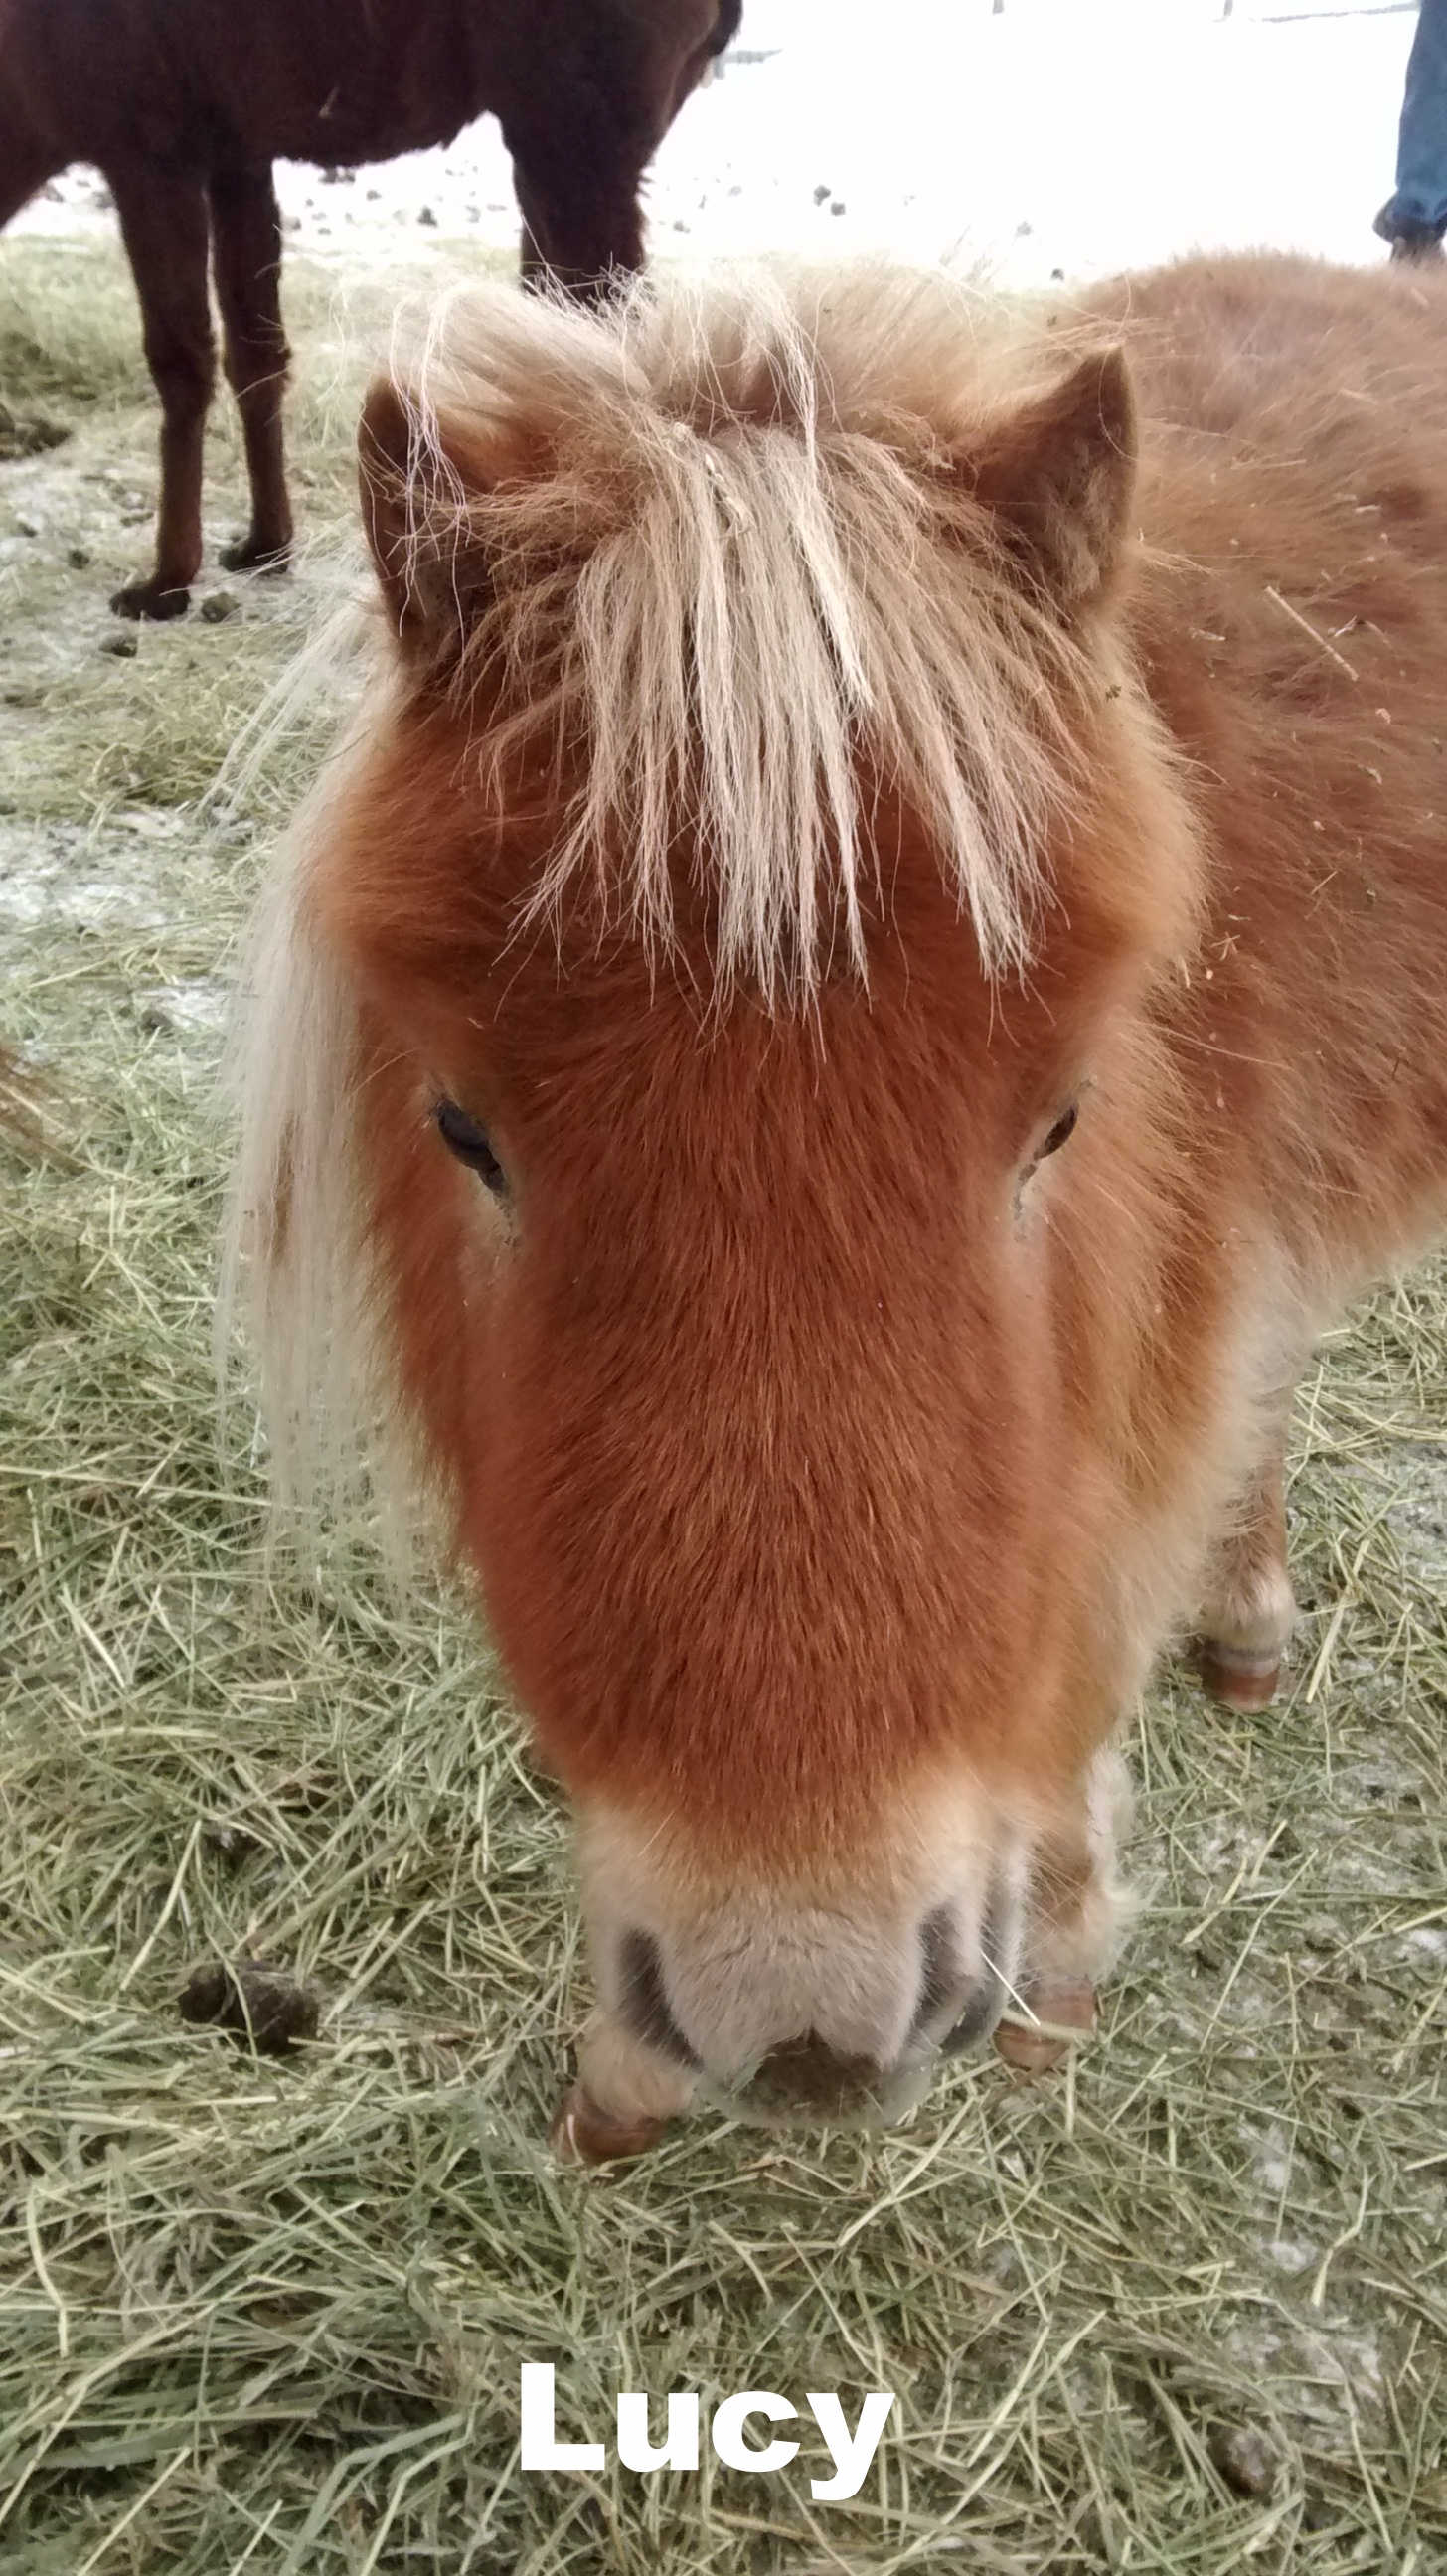 lucy the miniature horse.jpg